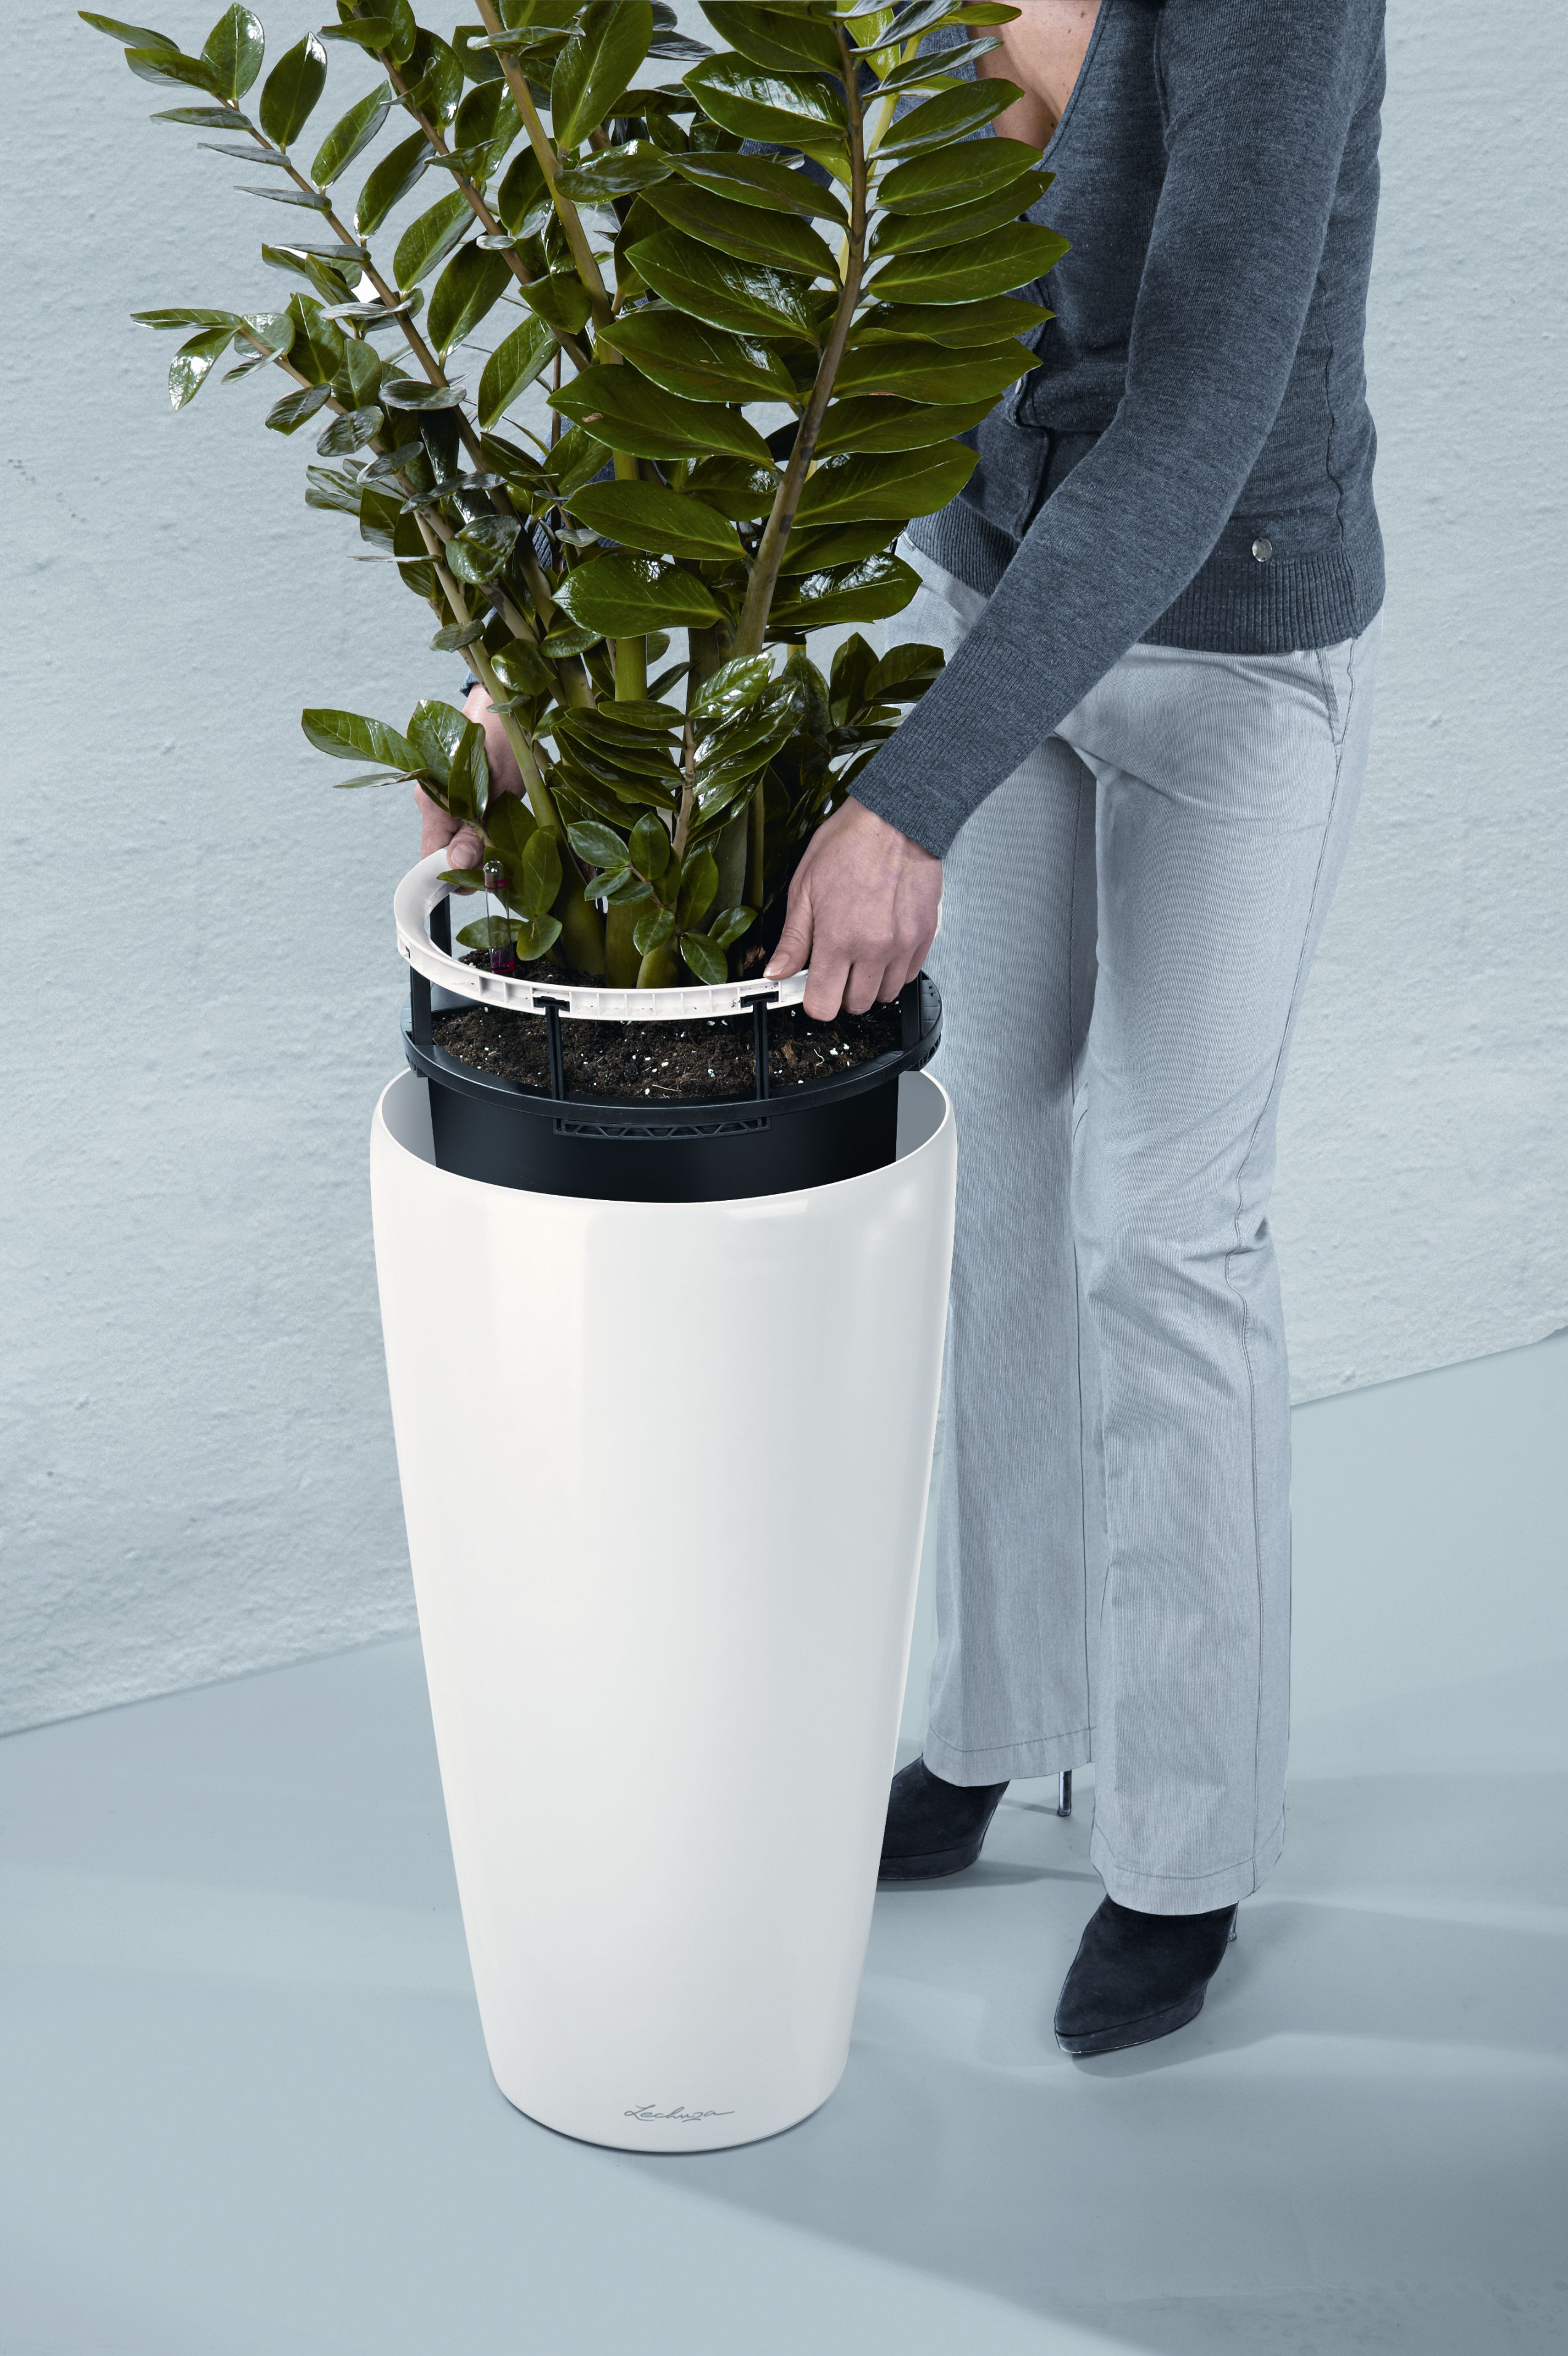 lechuza 39 s new rondo self watering planter makes bold. Black Bedroom Furniture Sets. Home Design Ideas